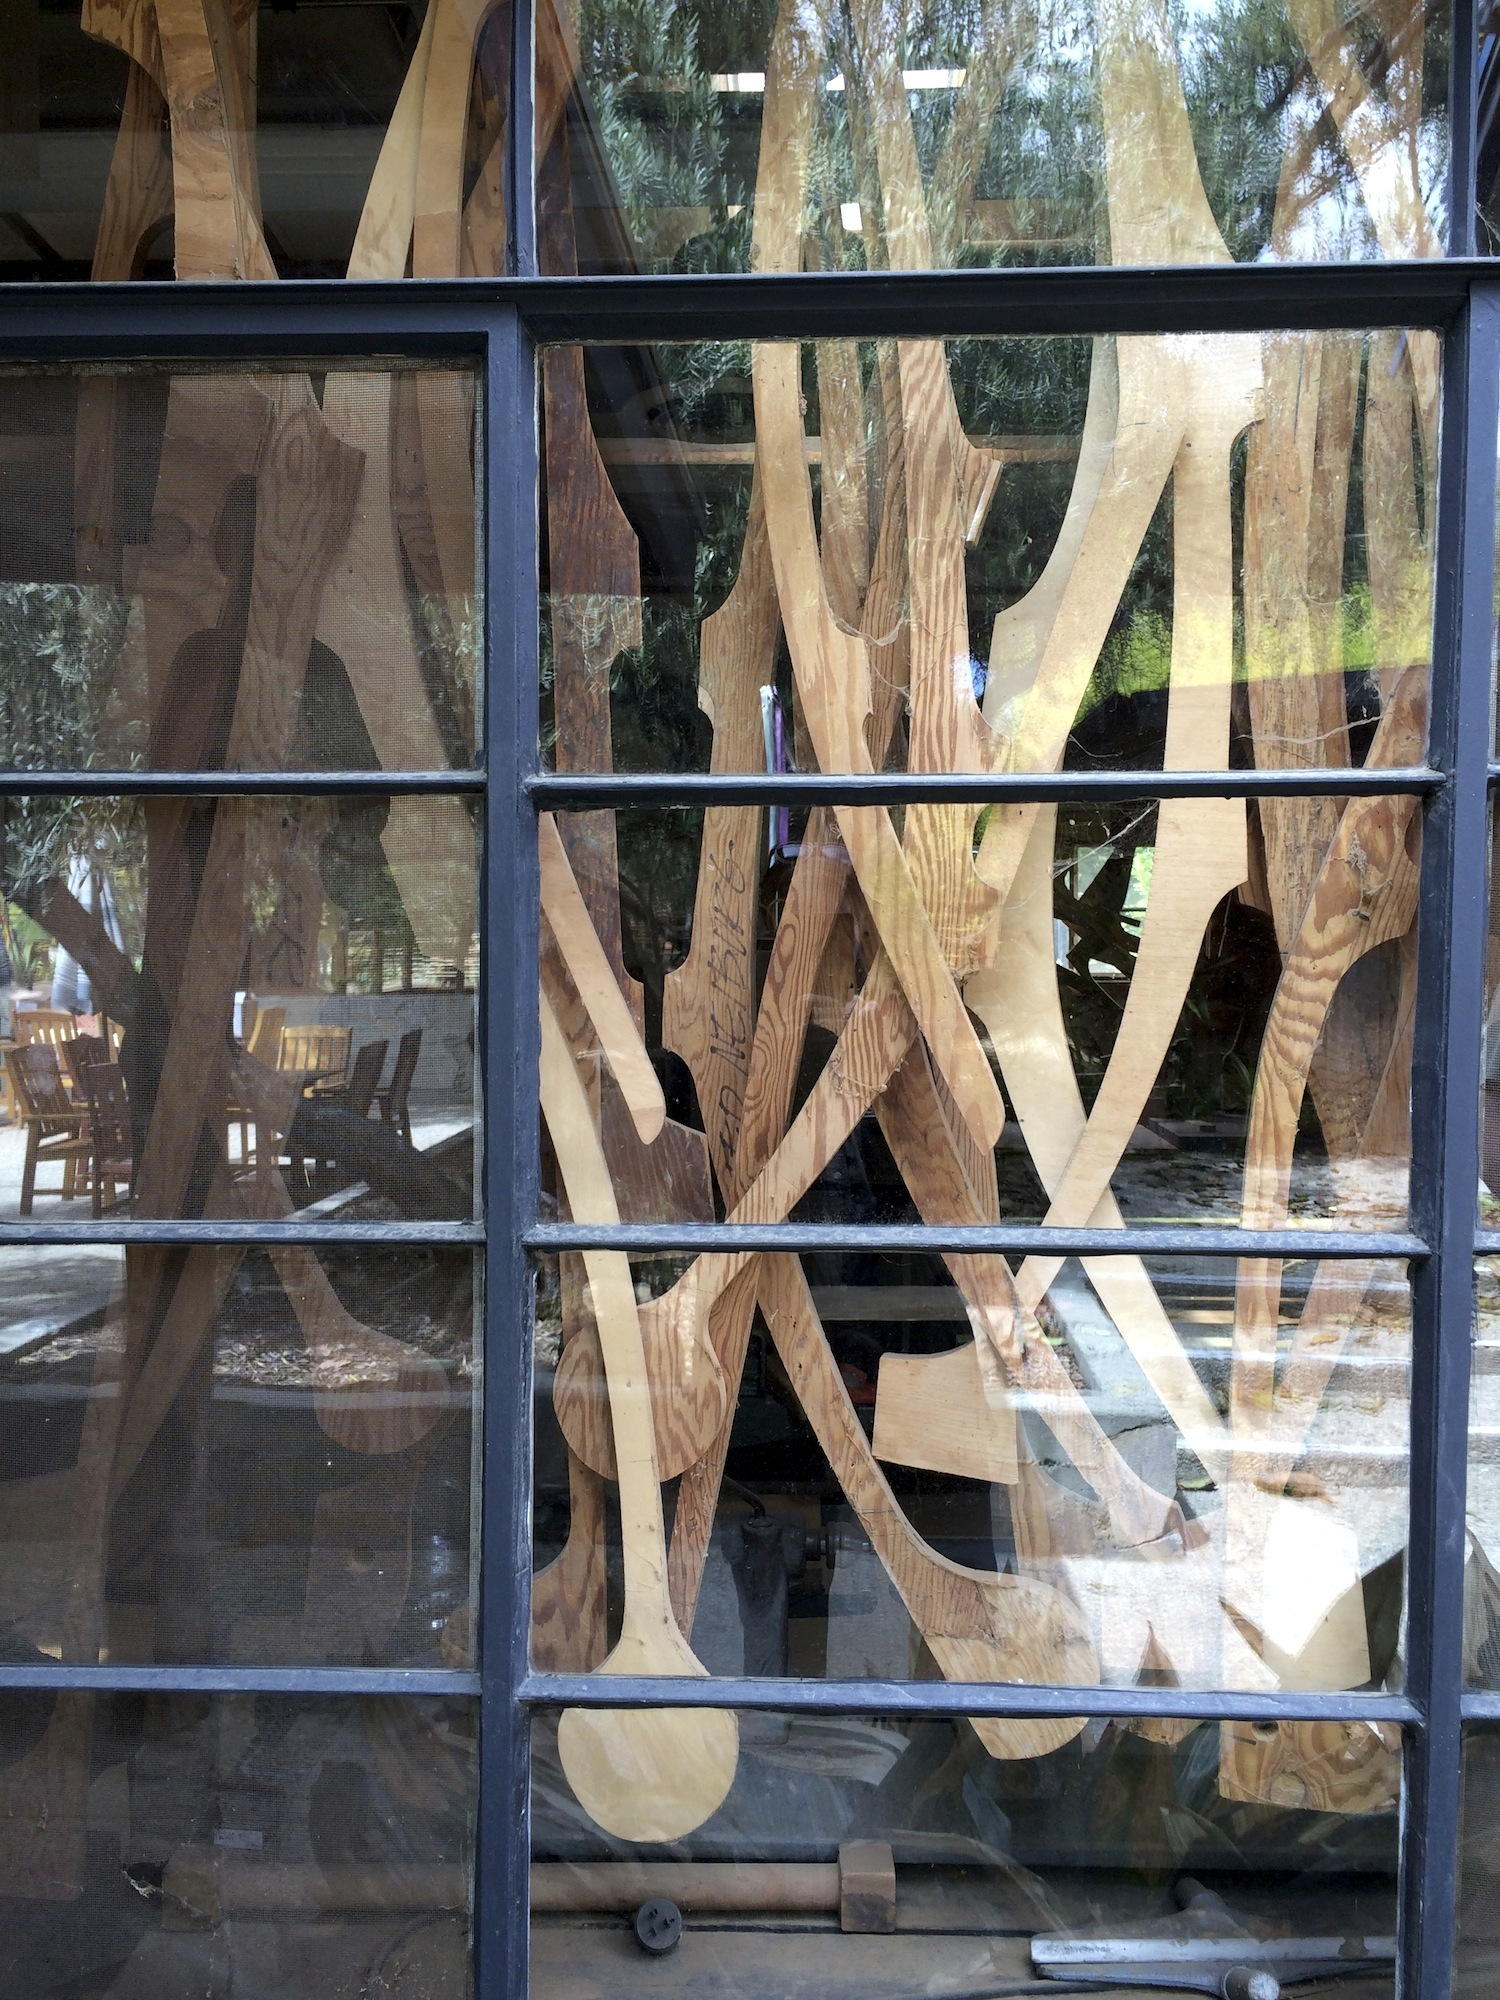 A view of the patterns hanging in the workshop window.